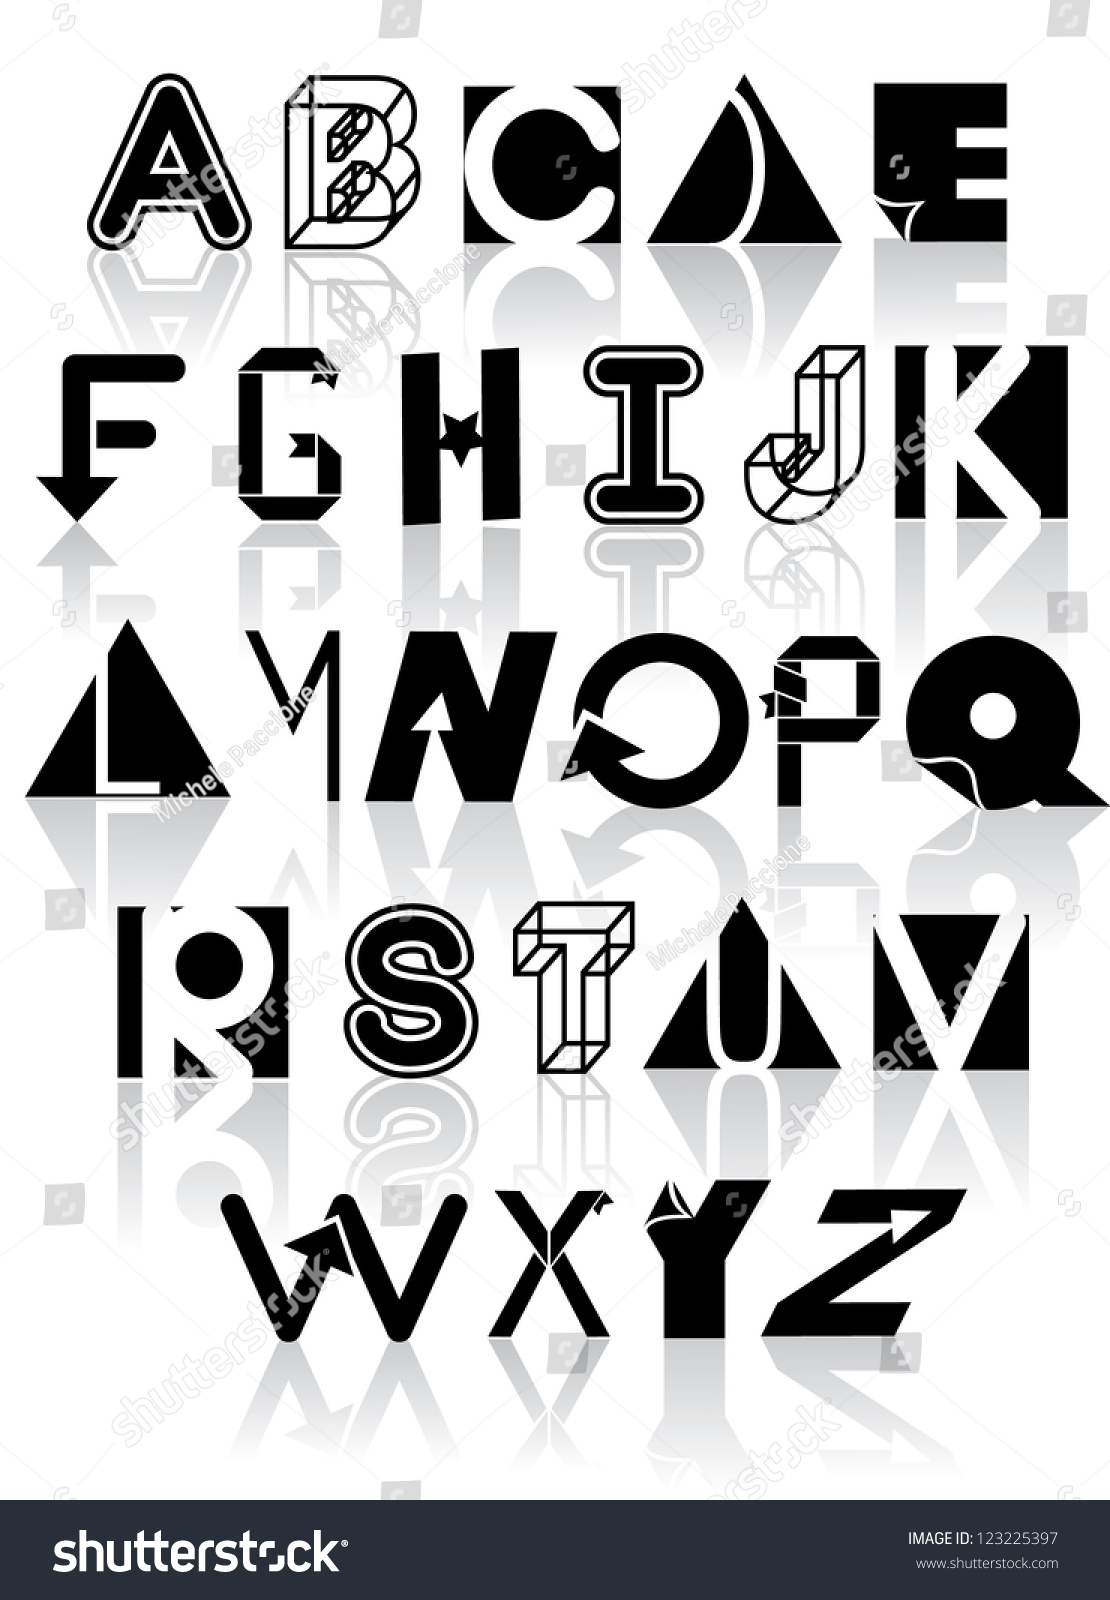 Variety black white icons symbols alphabet stock vector 123225397 variety of black and white icons symbols alphabet a through z biocorpaavc Image collections